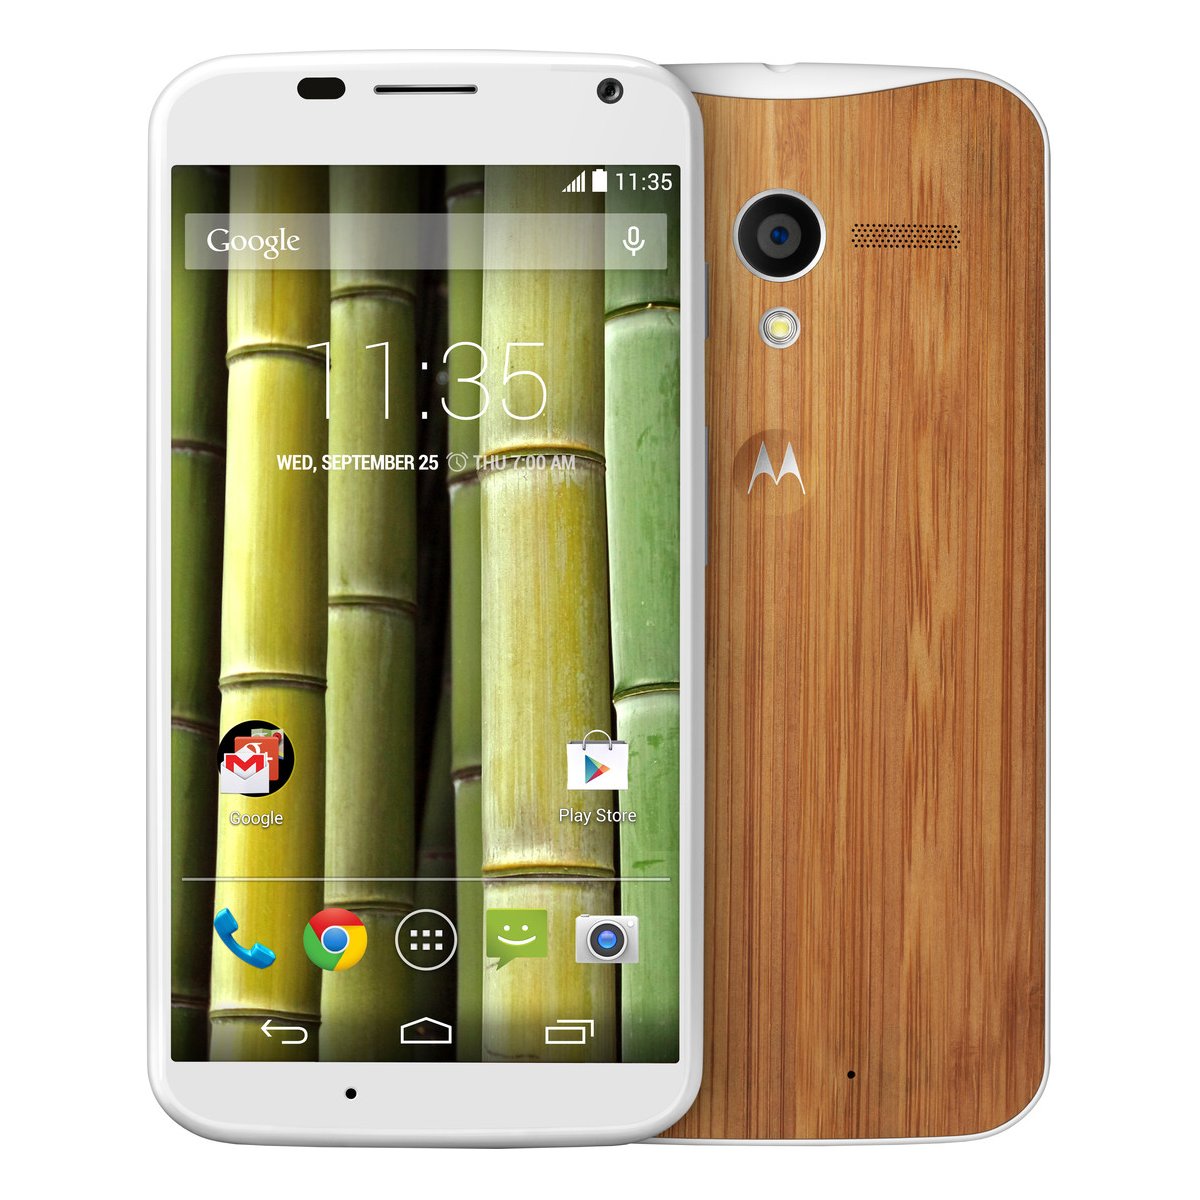 Motorola Moto X WiFi GPS Android 4G LTE Phone Sprint in White with Bamboo Back Panel